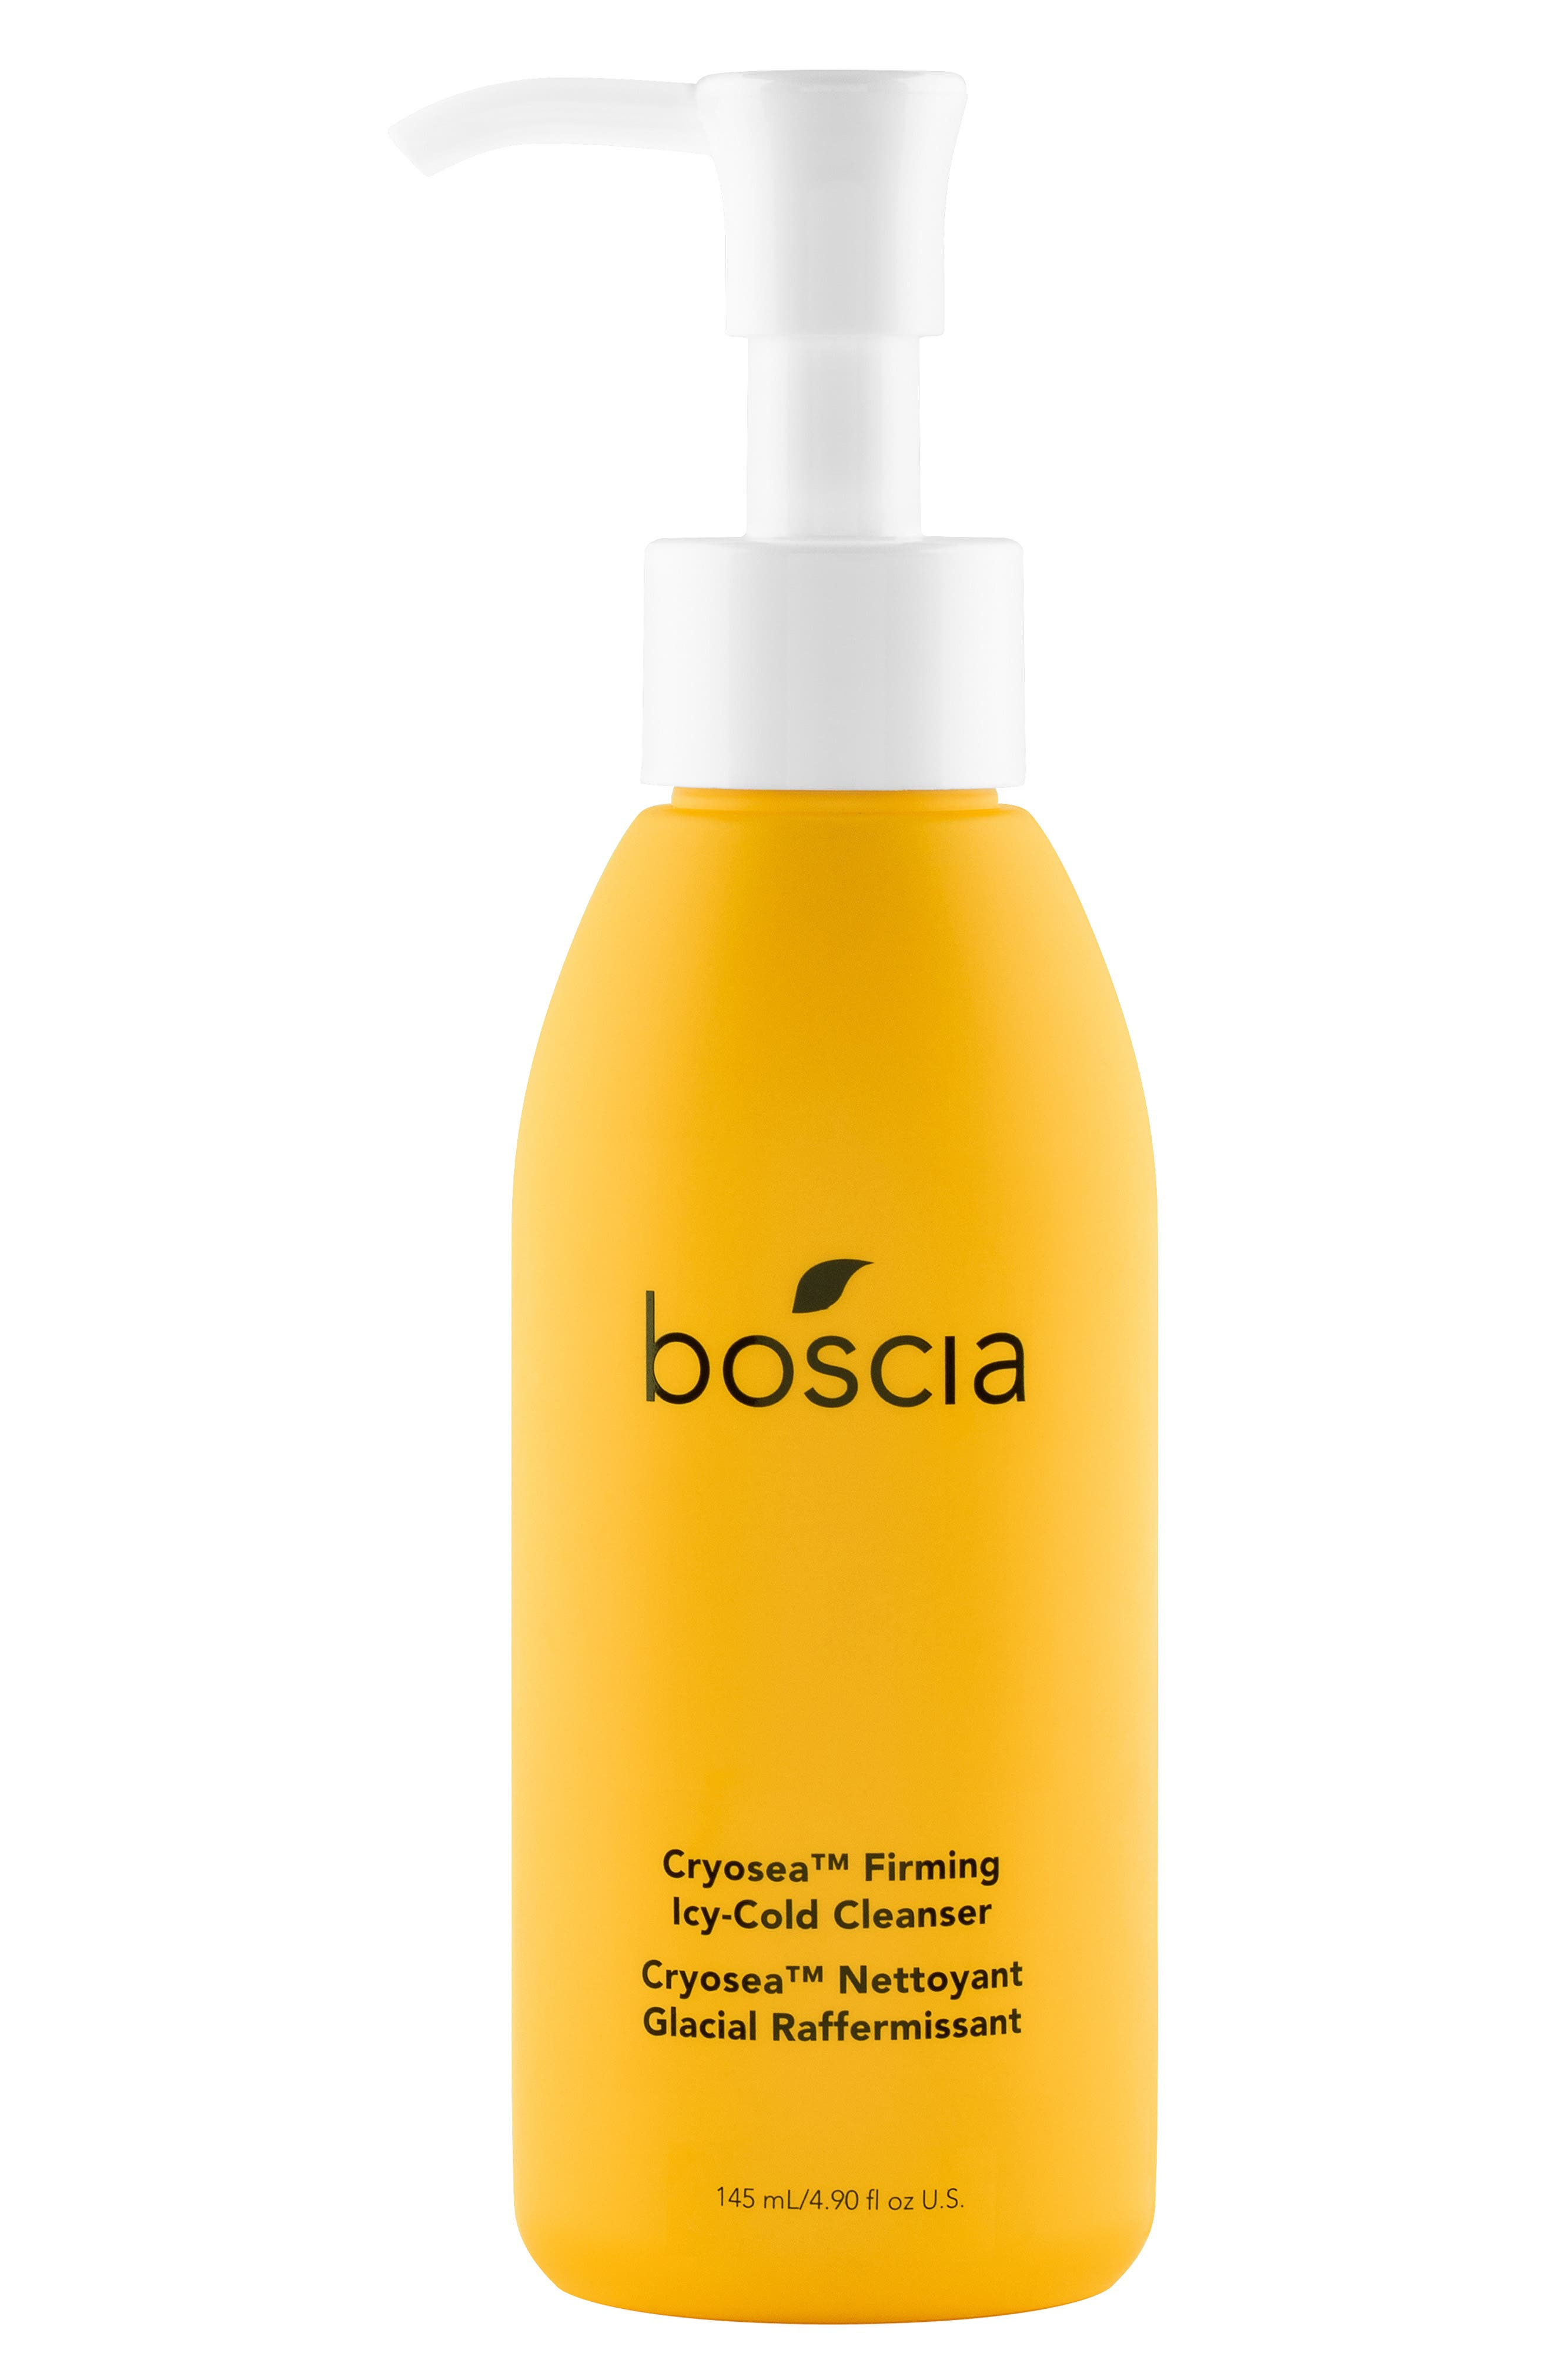 Cryosea(TM) Firming Icy-Cold Cleanser